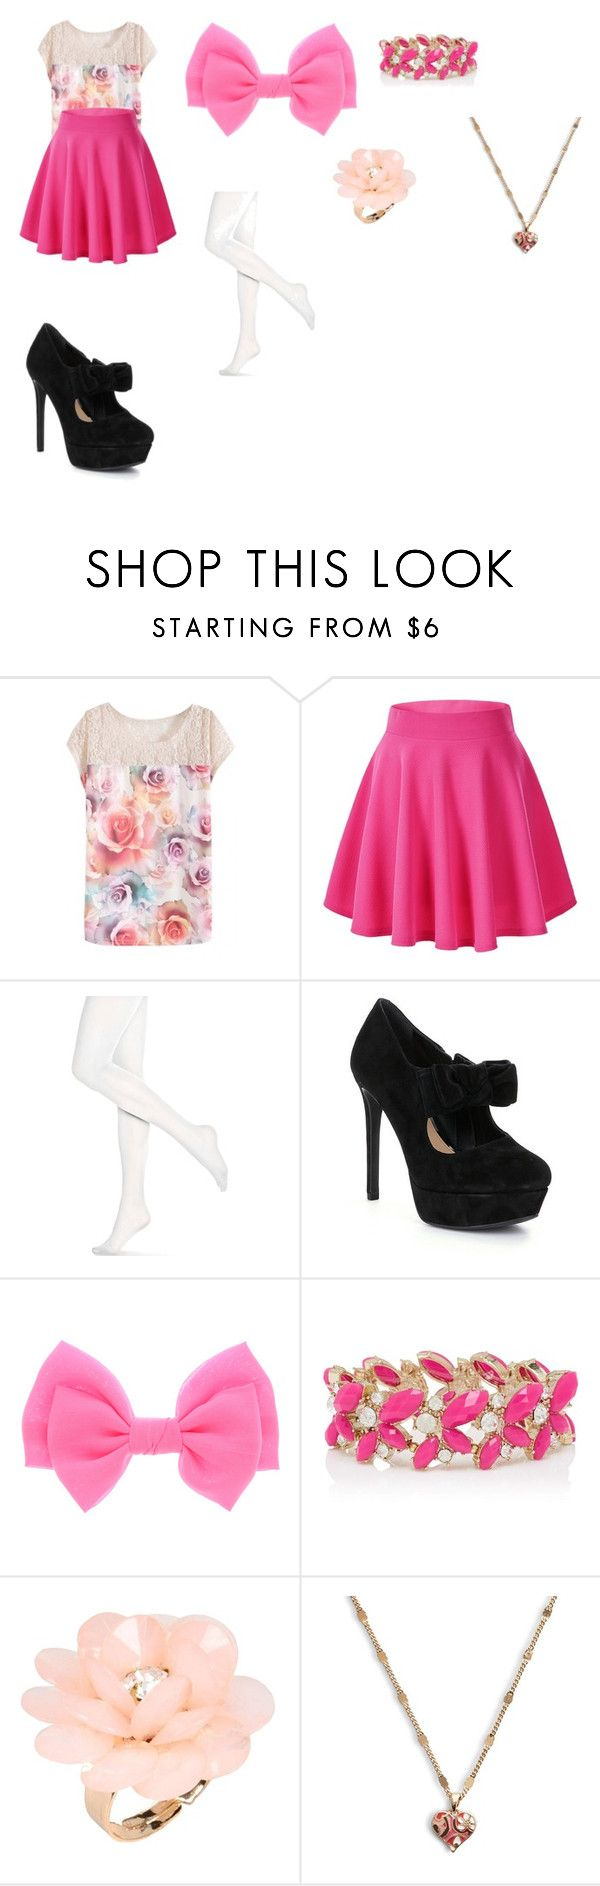 """A Girly Outfit for Liv Rooney"" by sierra-ivy on Polyvore featuring Hue, Gianni Bini, Forever New, Dettagli, Vera Bradley, women's clothing, women's fashion, women, female and woman"